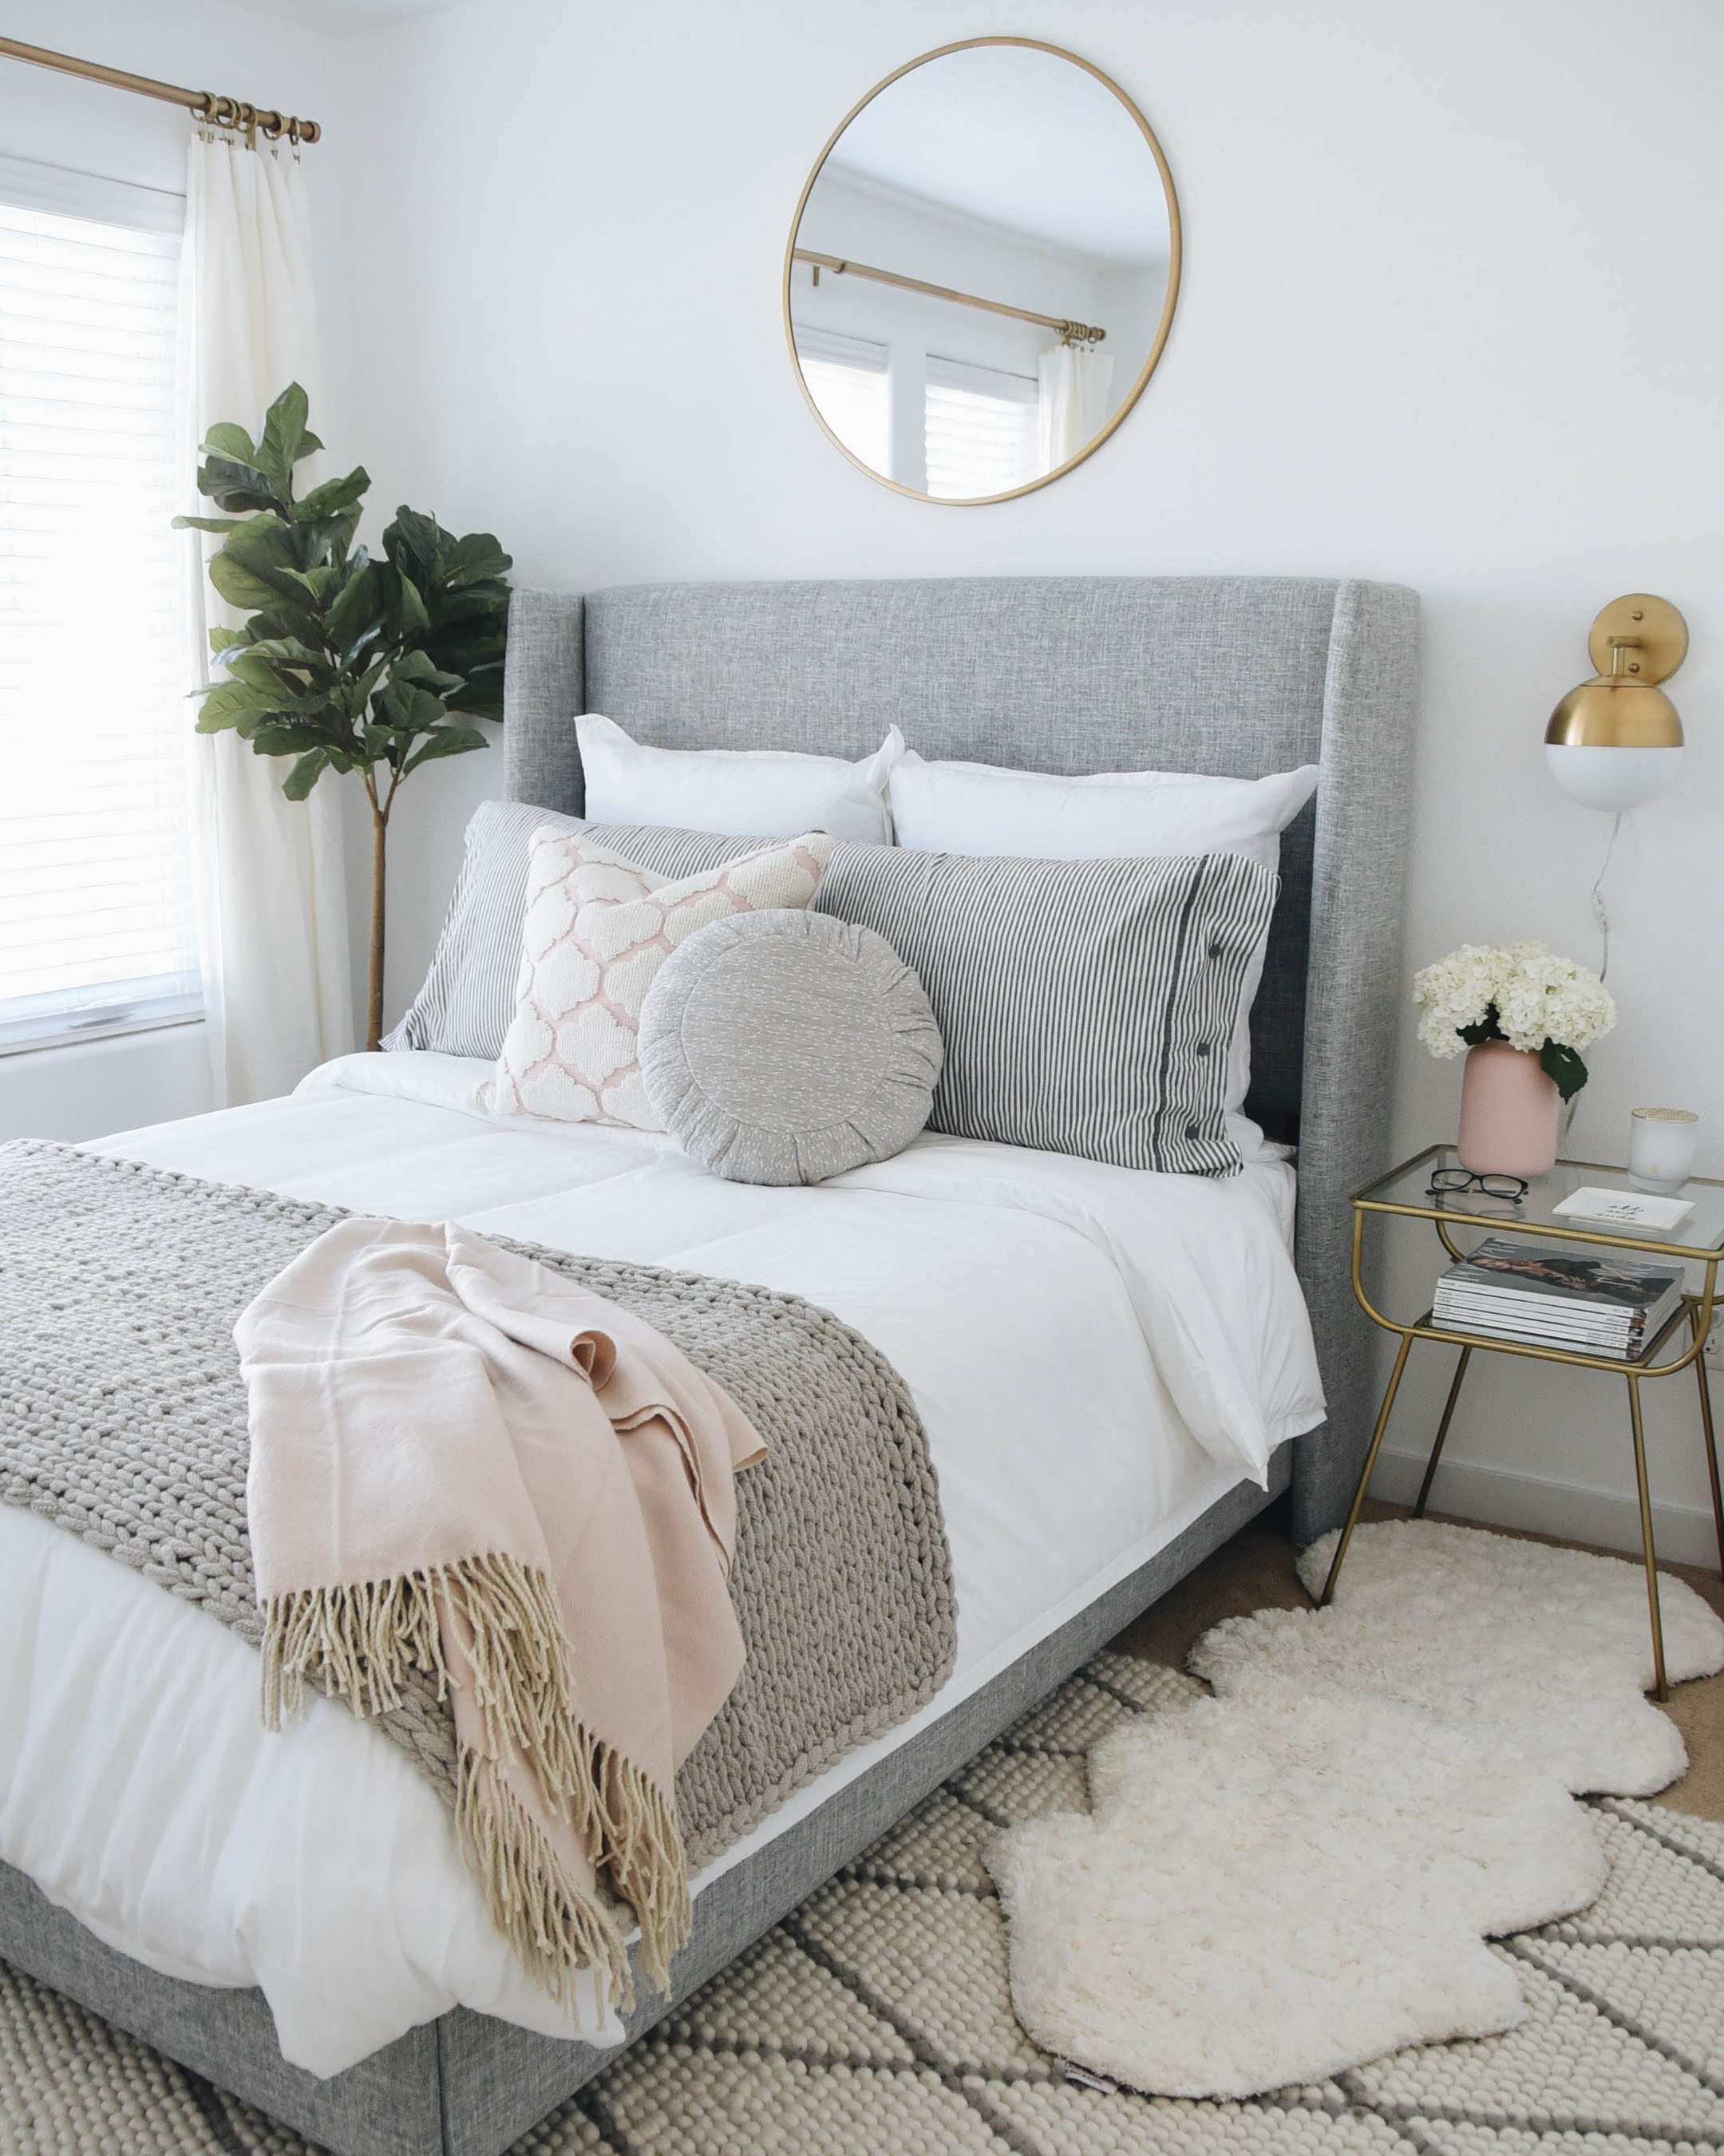 Crystalin Marie guest room